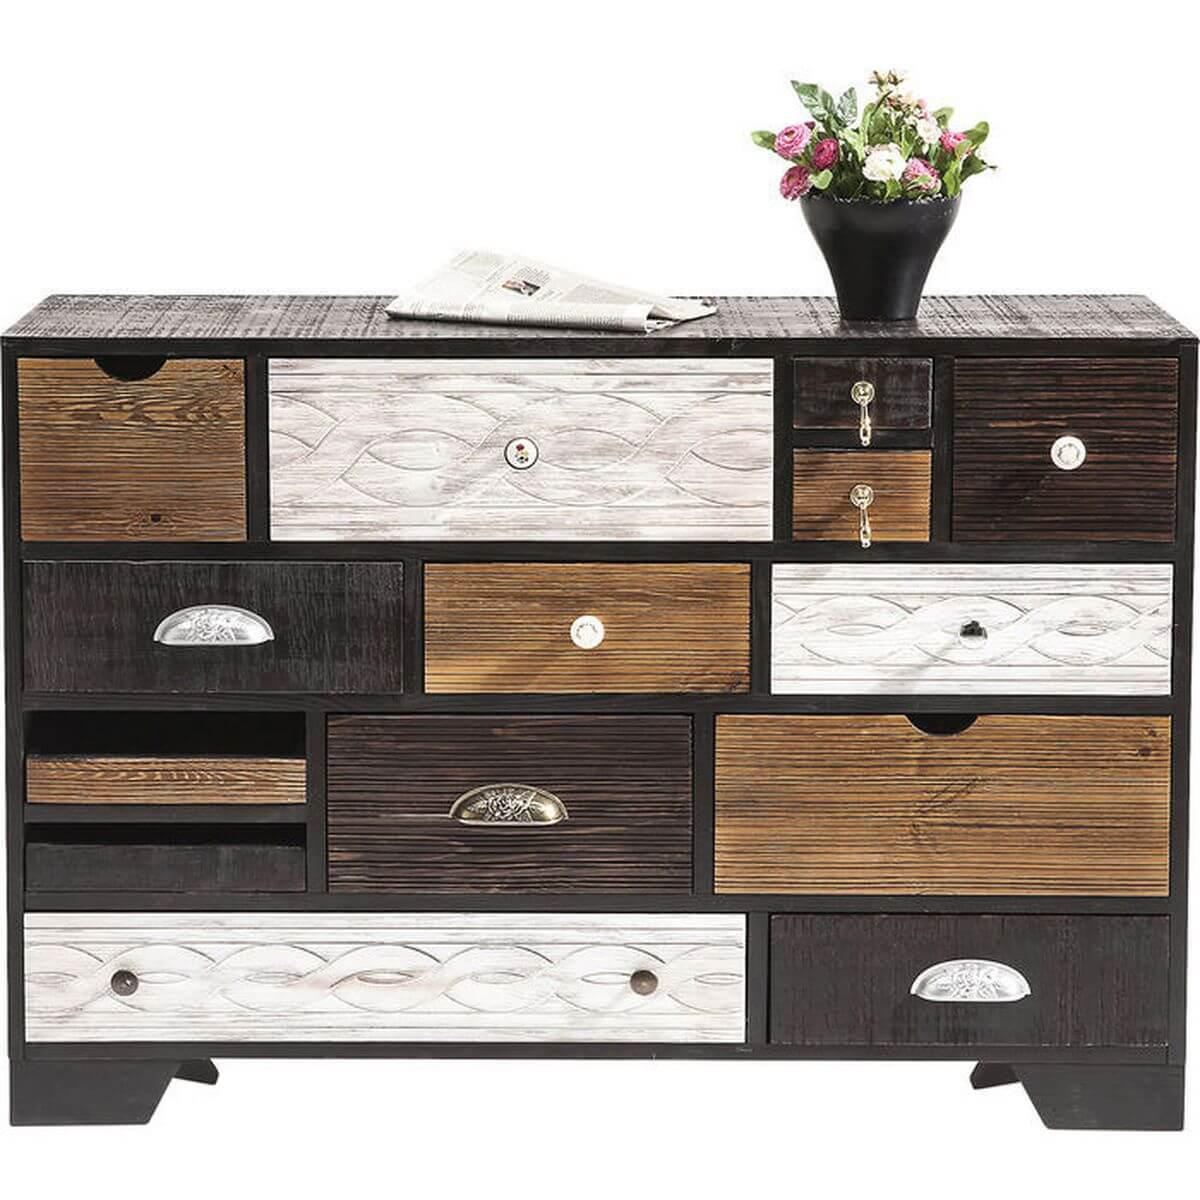 COMMODE FINCA EU 14 TIROIRS KARE DESIGN